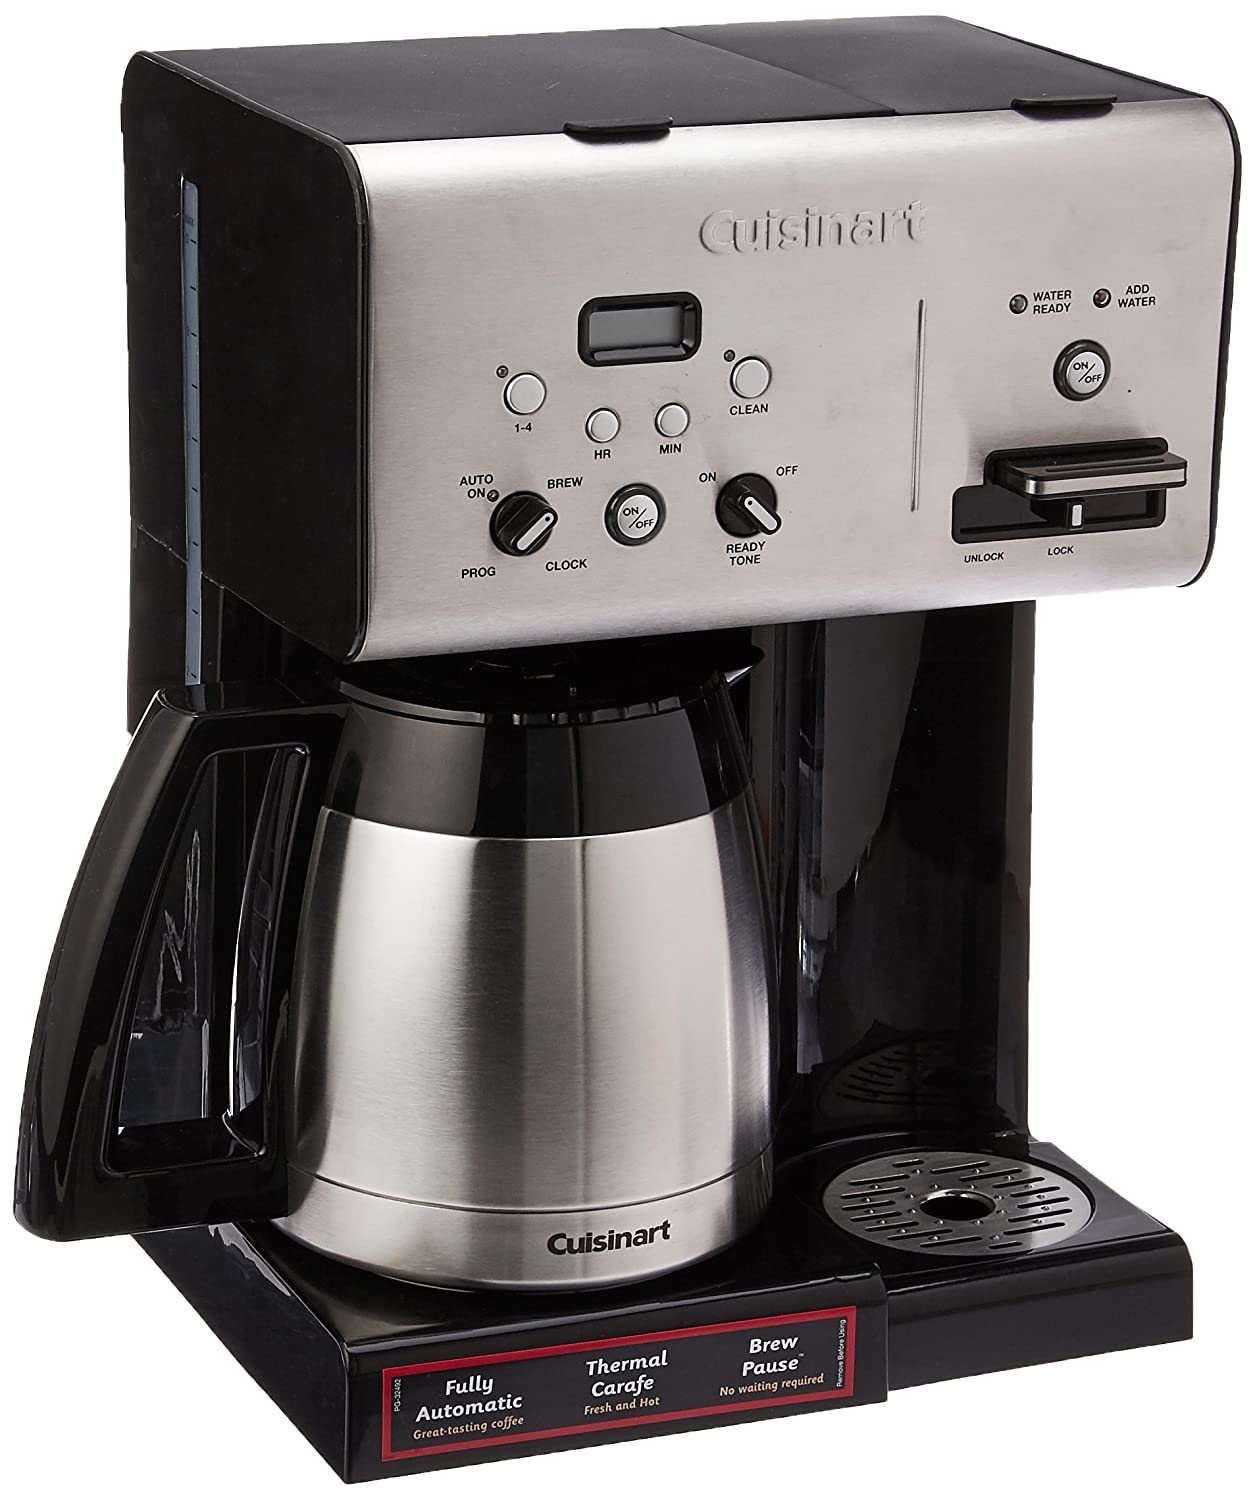 programmable coffee brewer with hot water system